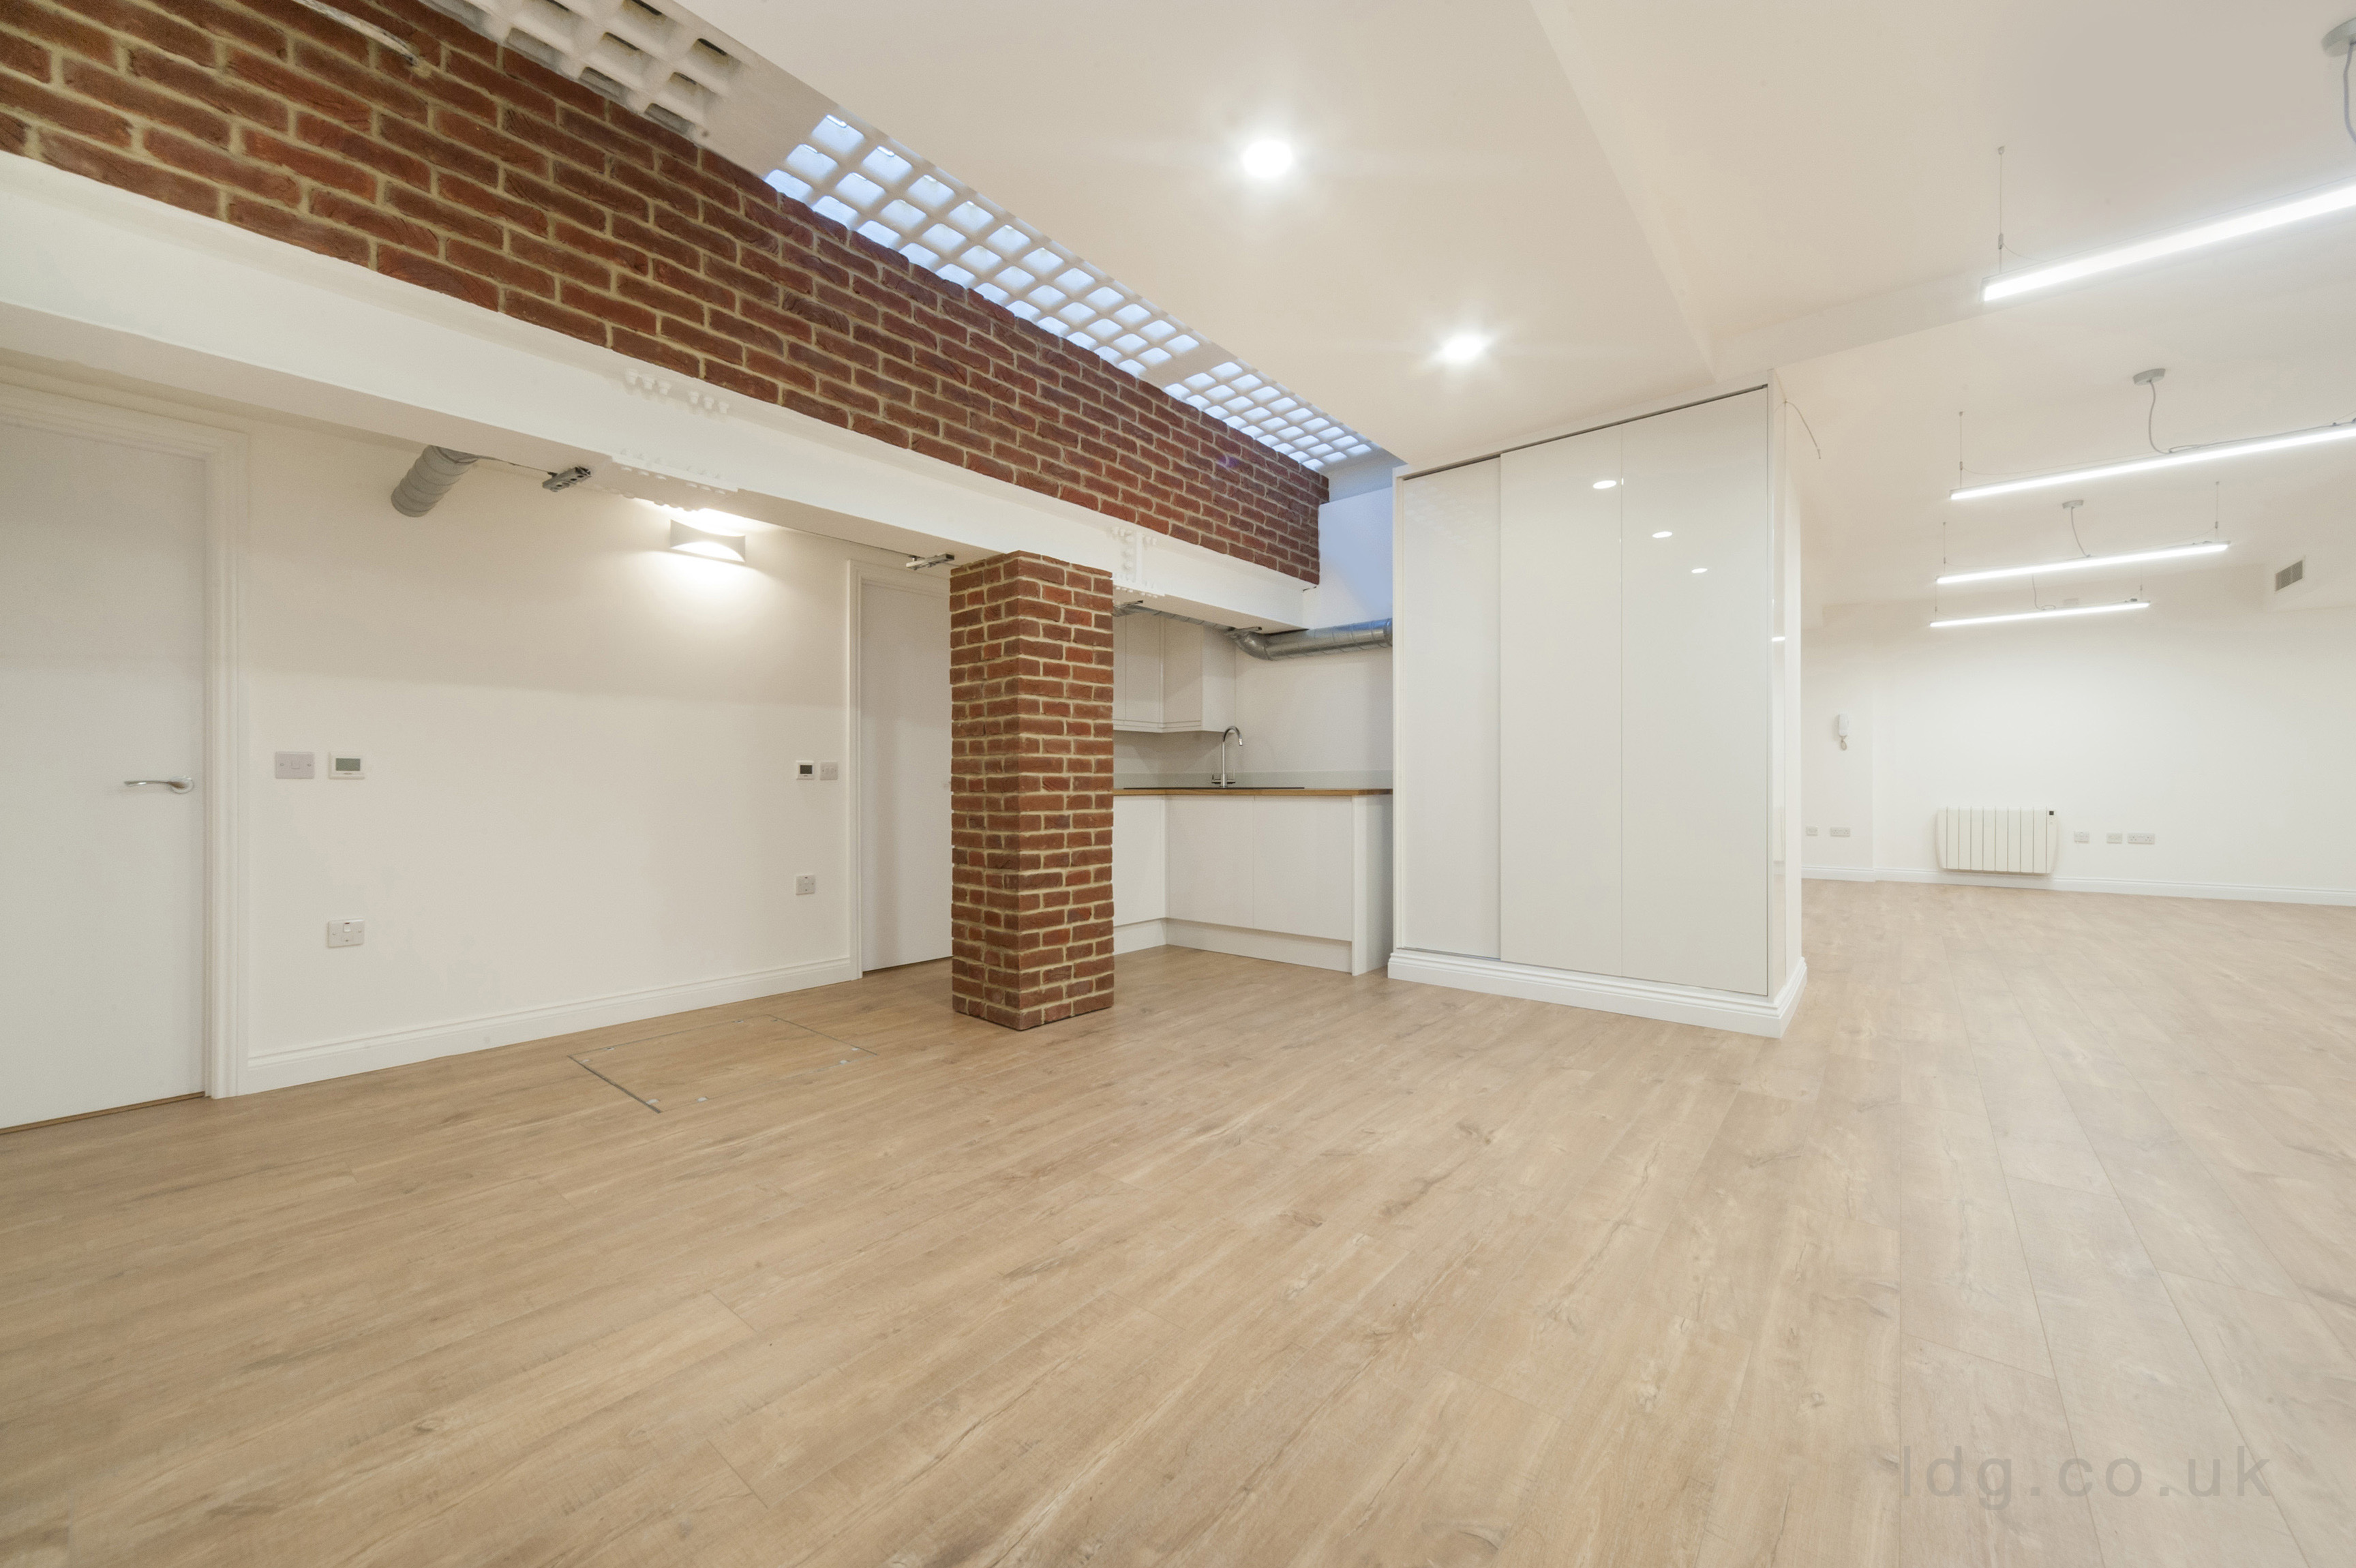 24-25 Foley Street, London, Greater London W1W 6DX